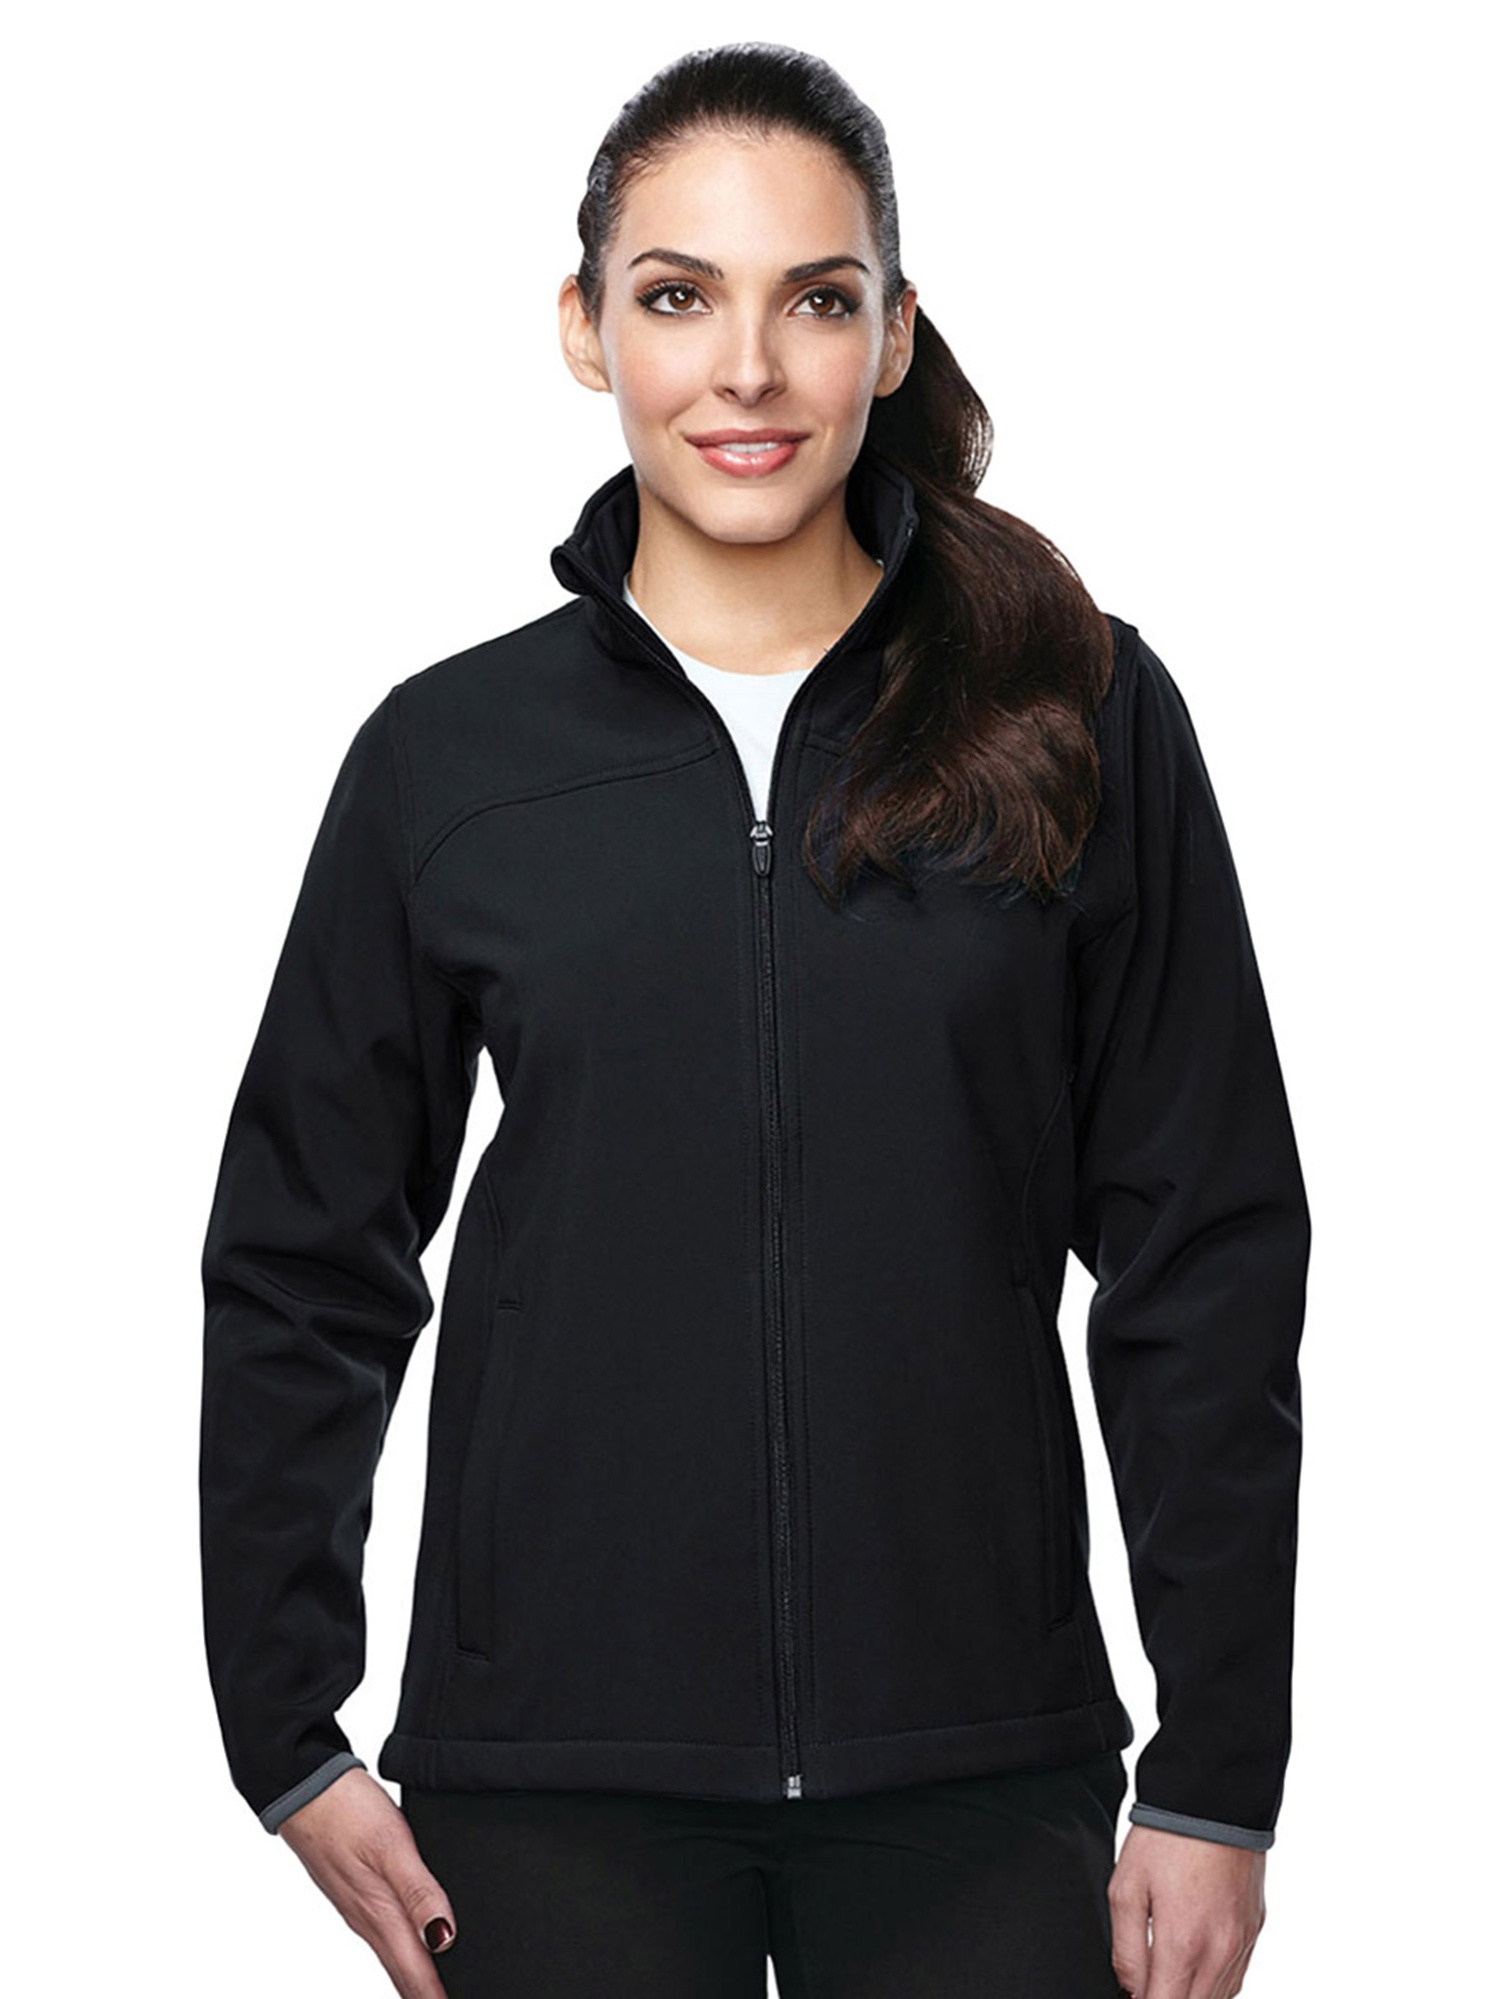 Steve Madden Womens Softshell Fashion Jacket air Layer